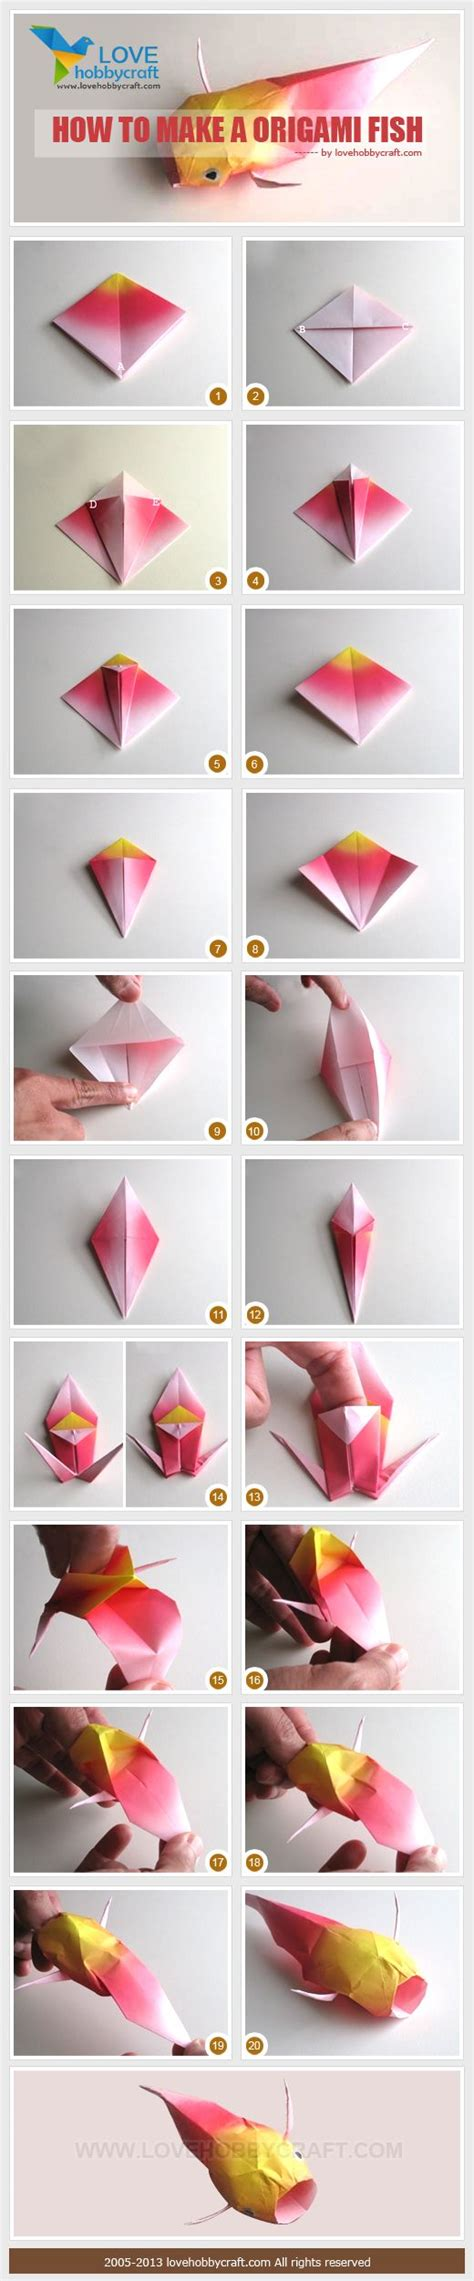 How To Make Koi Fish Origami - the 25 best ideas about origami fish on